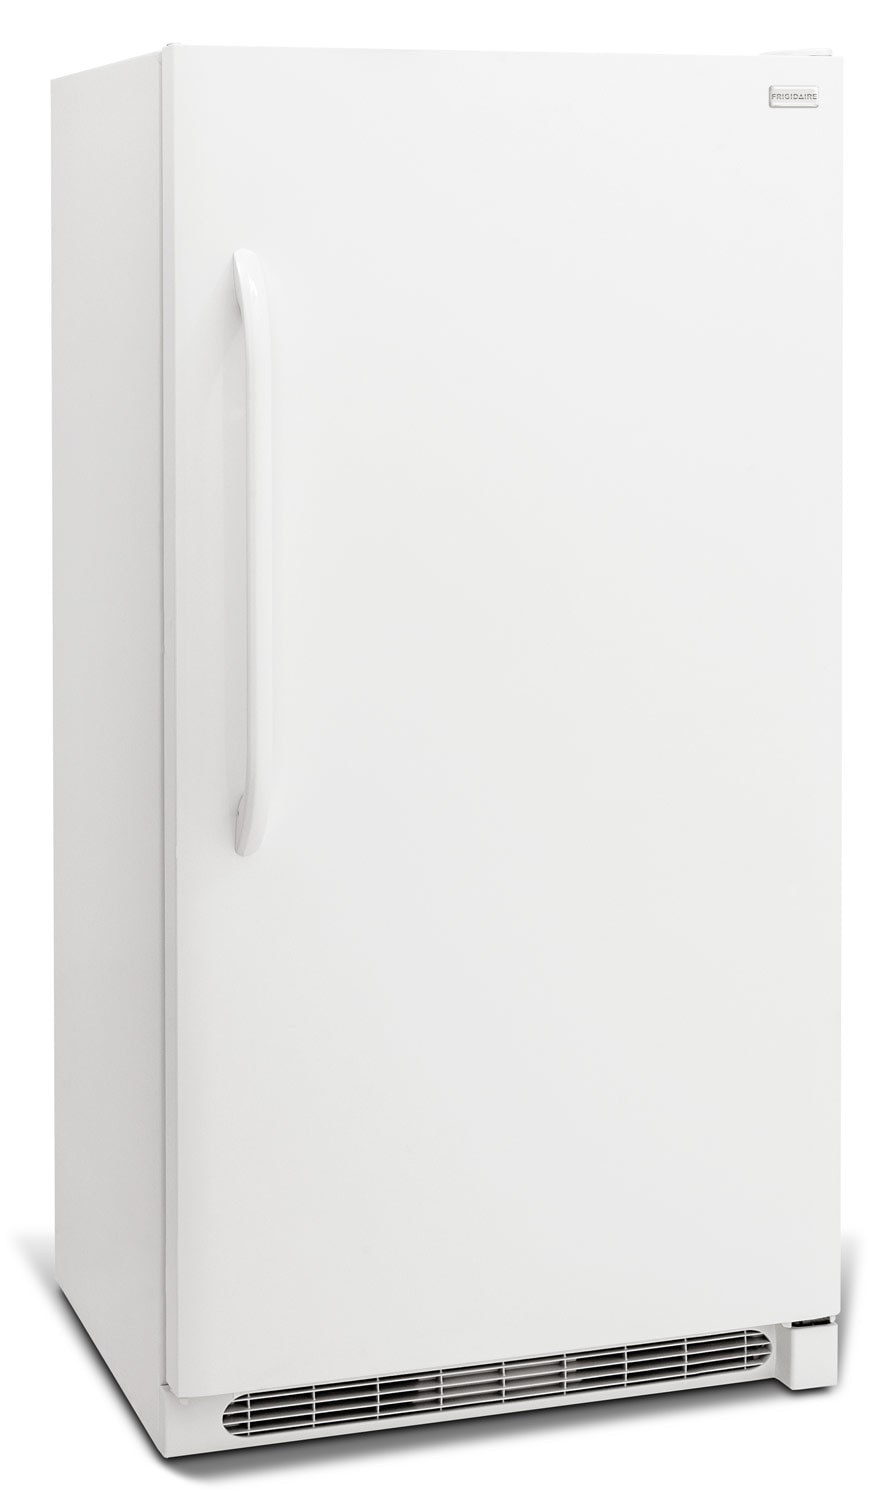 Frigidaire White Upright Freezer (16.9 Cu. Ft.) - FFVU17F4QW